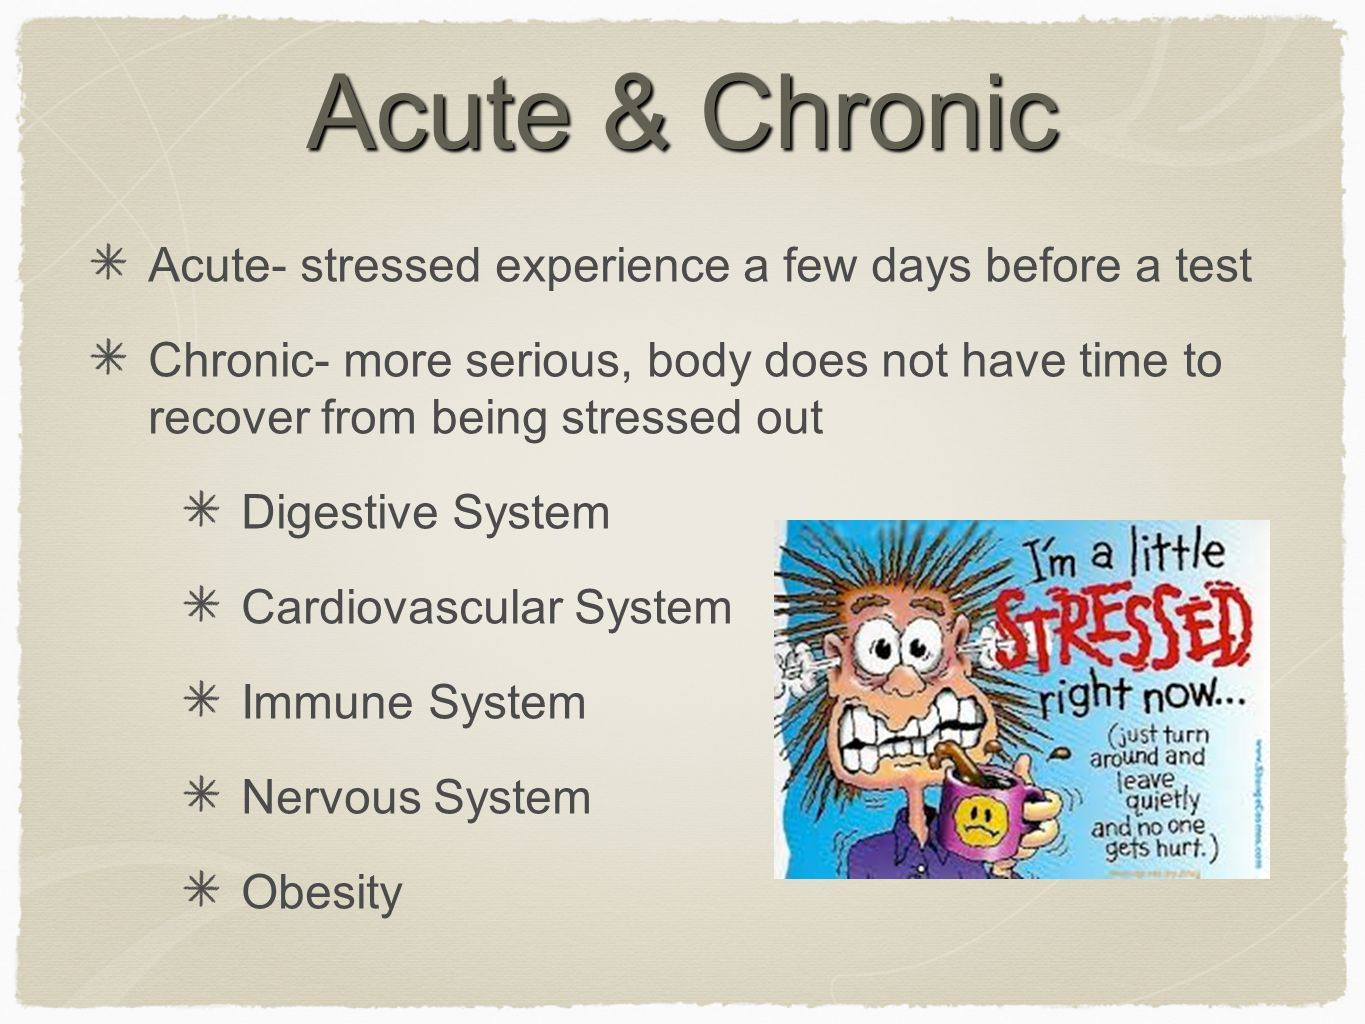 Acute & Chronic Acute- stressed experience a few days before a test Chronic- more serious, body does not have time to recover from being stressed out Digestive System Cardiovascular System Immune System Nervous System Obesity